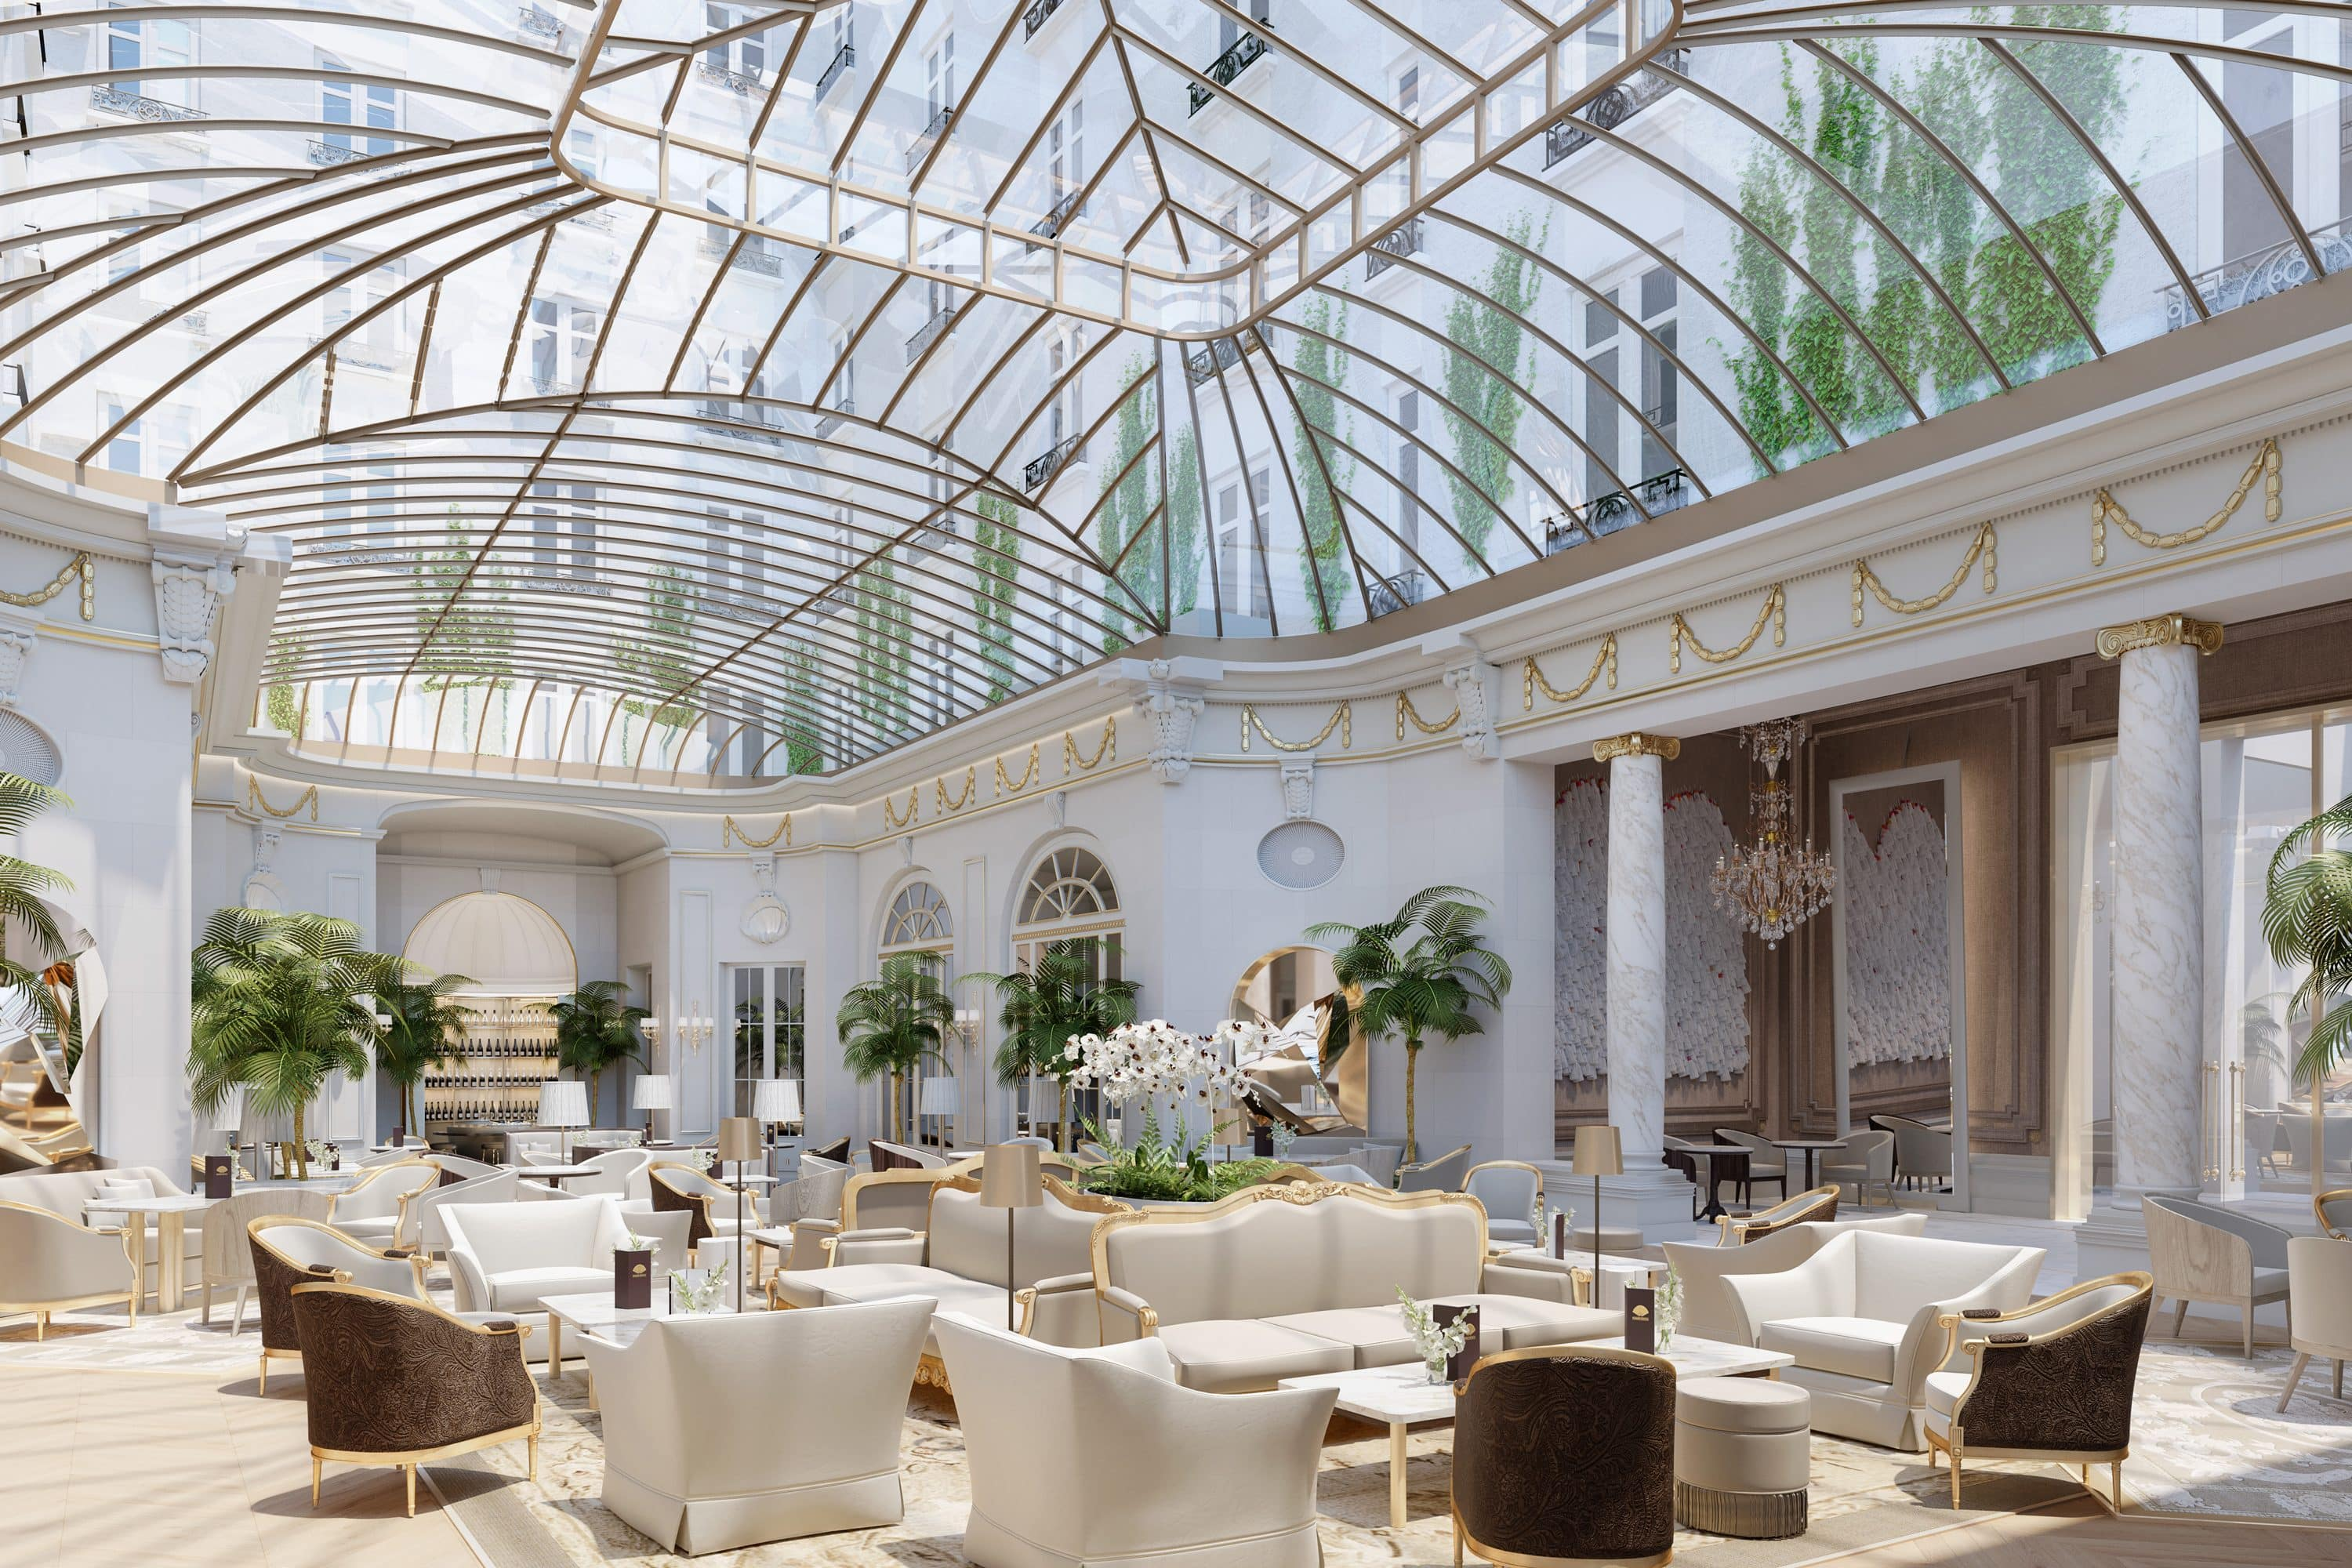 Palm Court with glass ceiling